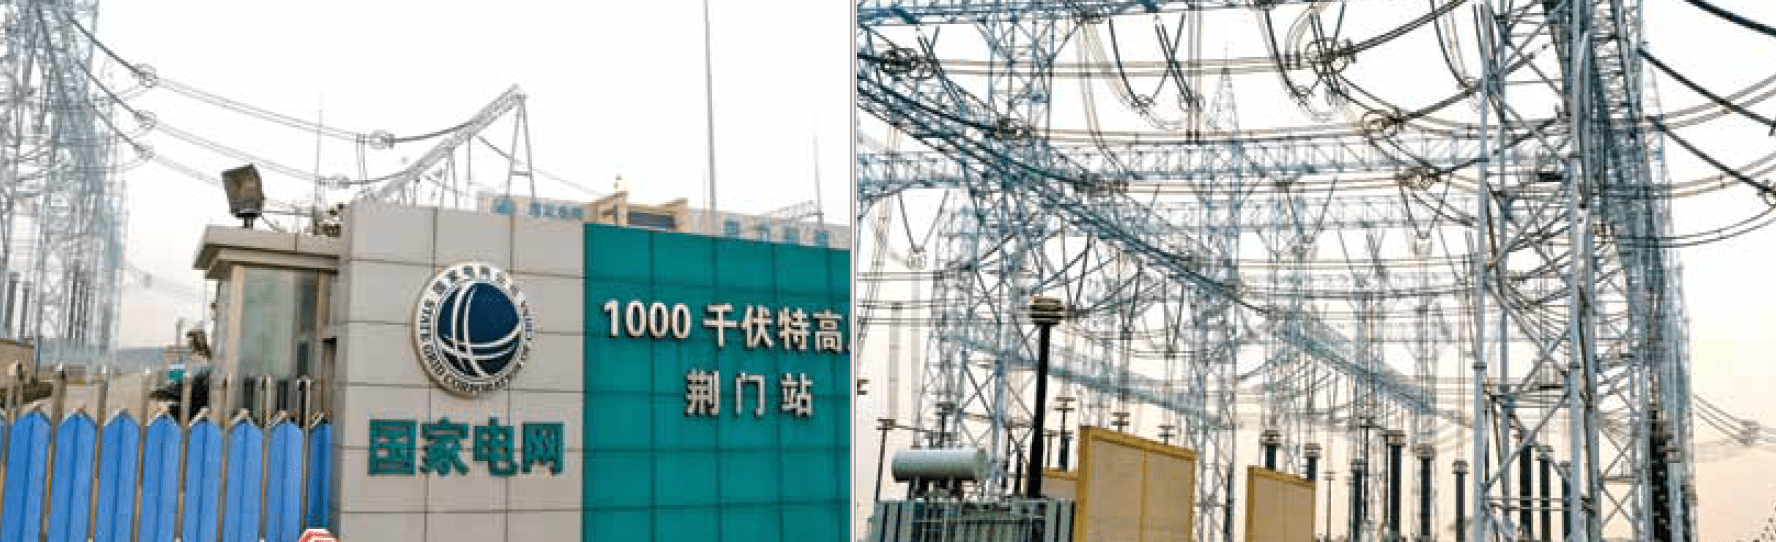 Unique Substation Features 1000 kV Composite GIS Bushings